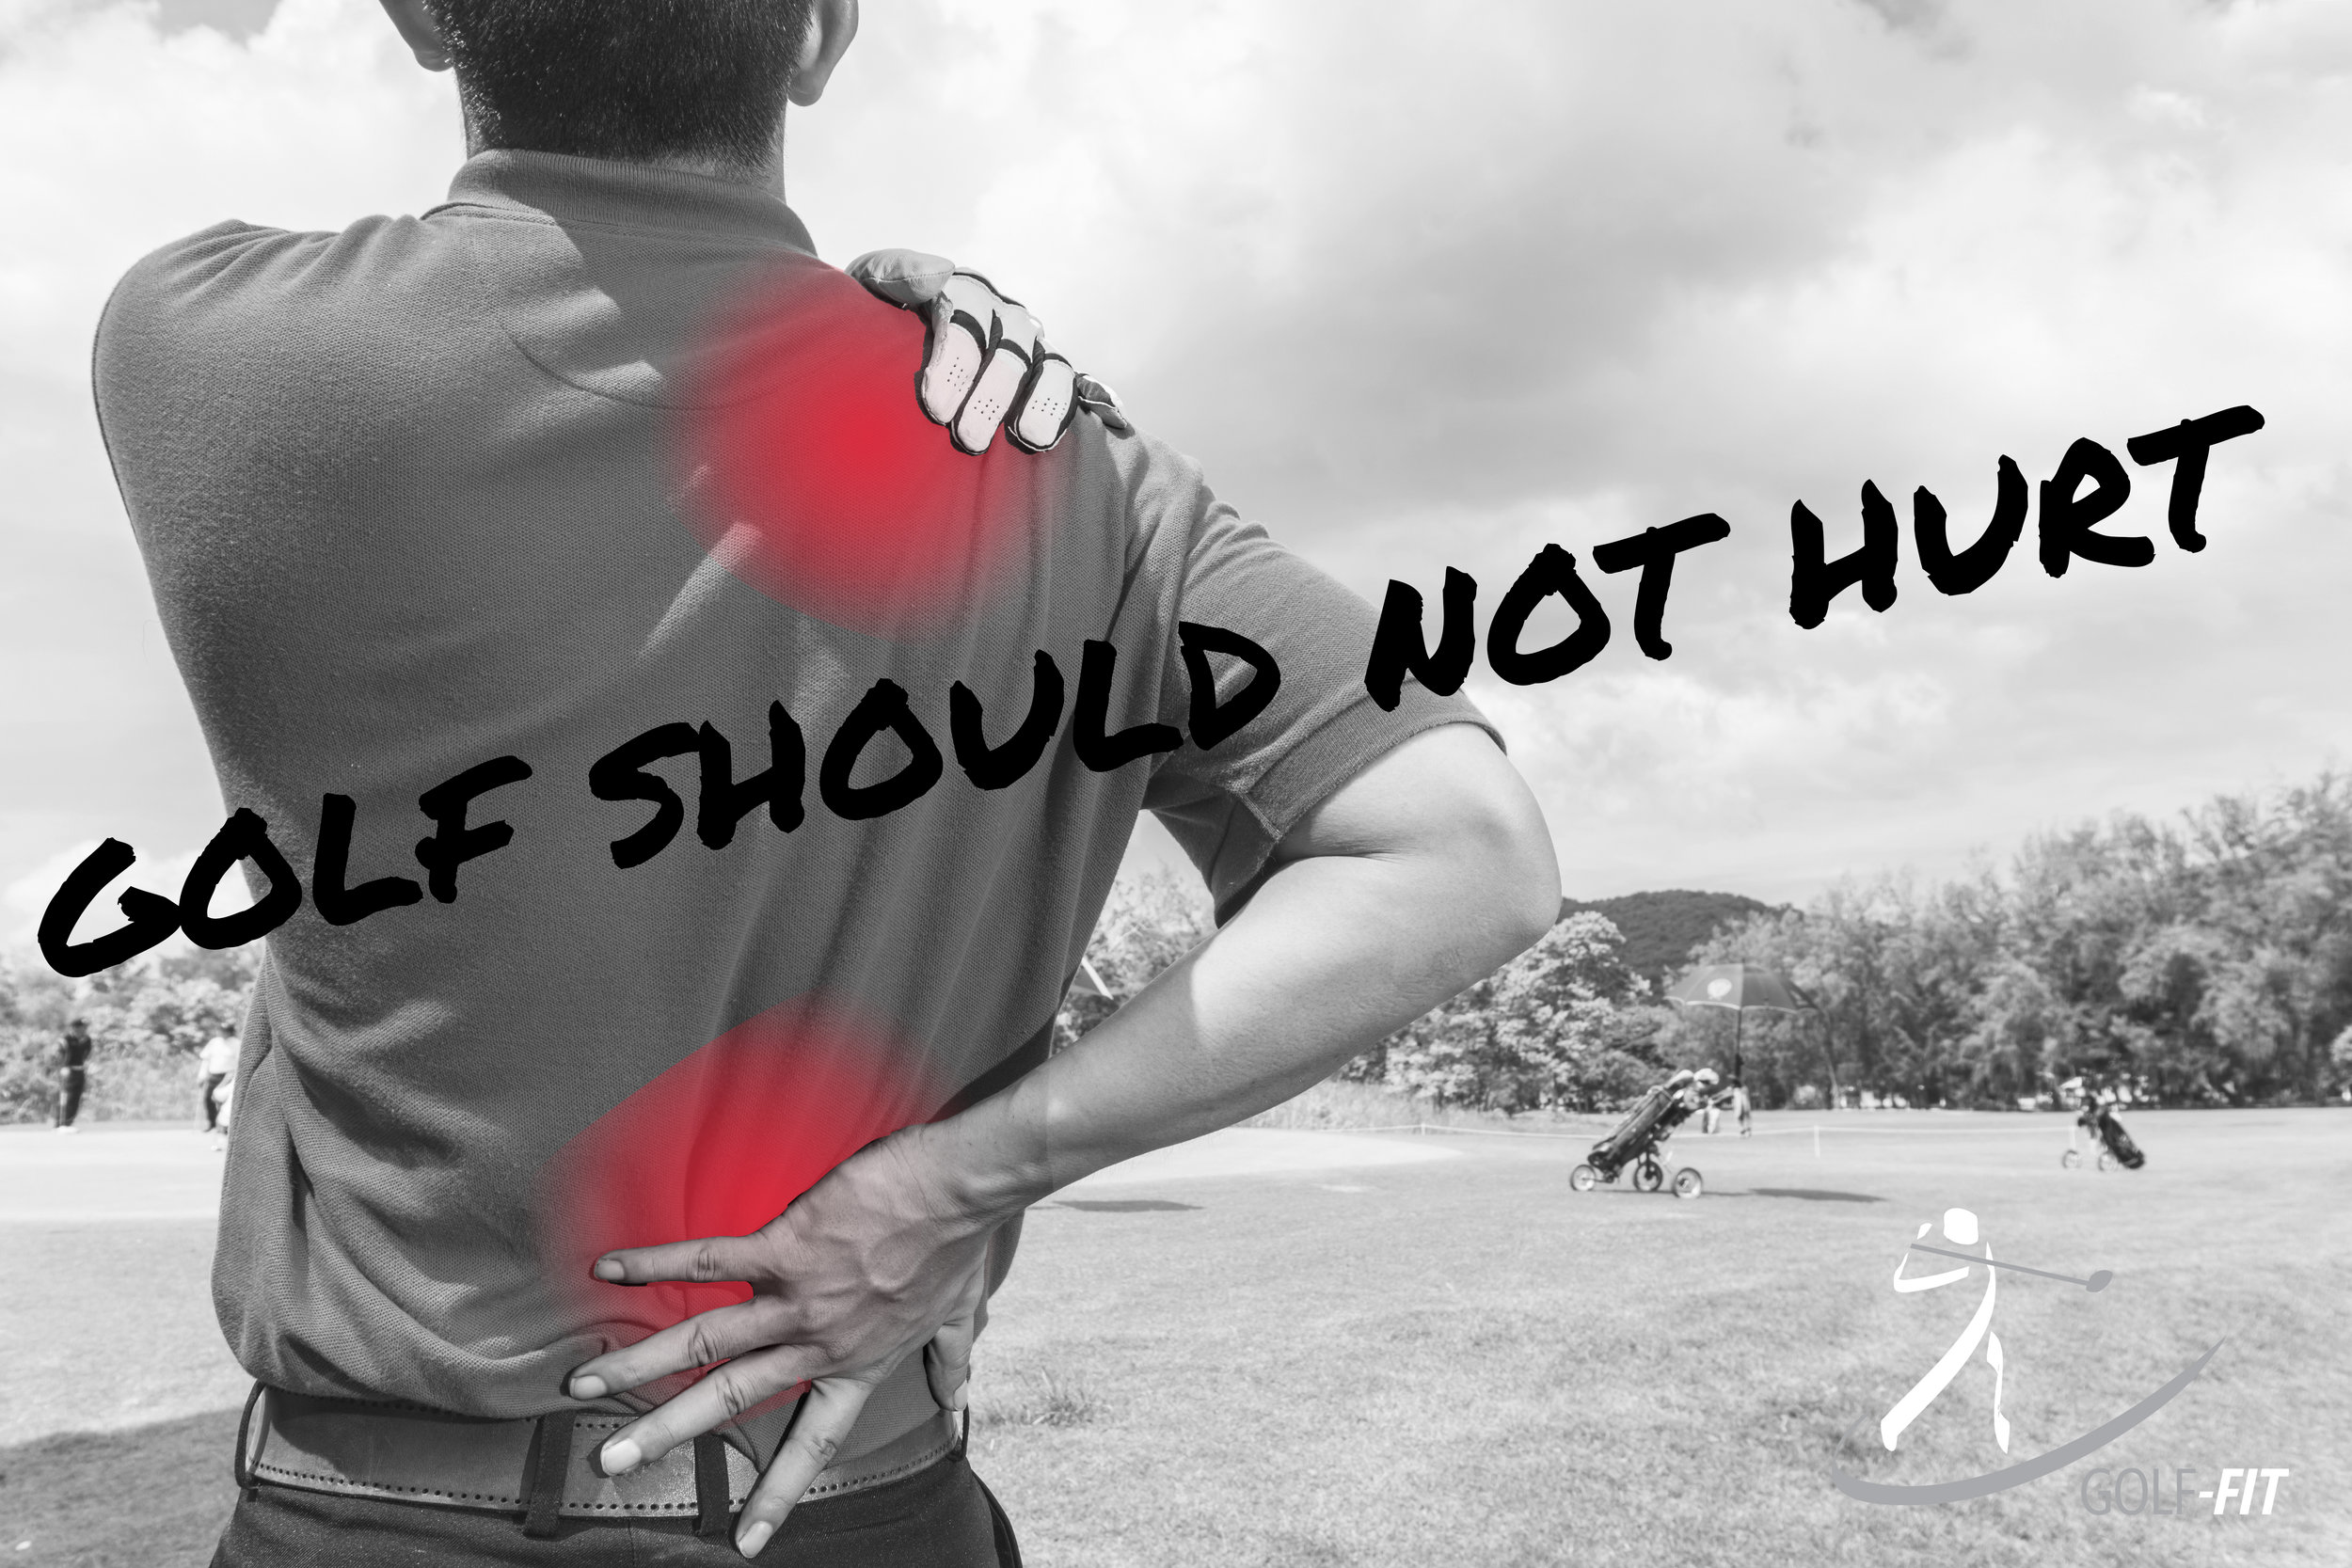 The journey to healthier golf - The pain you are experiencing on the golf course should not be viewed just as a sign of aging. It might actually be hinting at more serious health concerns in the future. Healthier golf is a journey, and GOLF-FIT's mission is to accompany you on it.